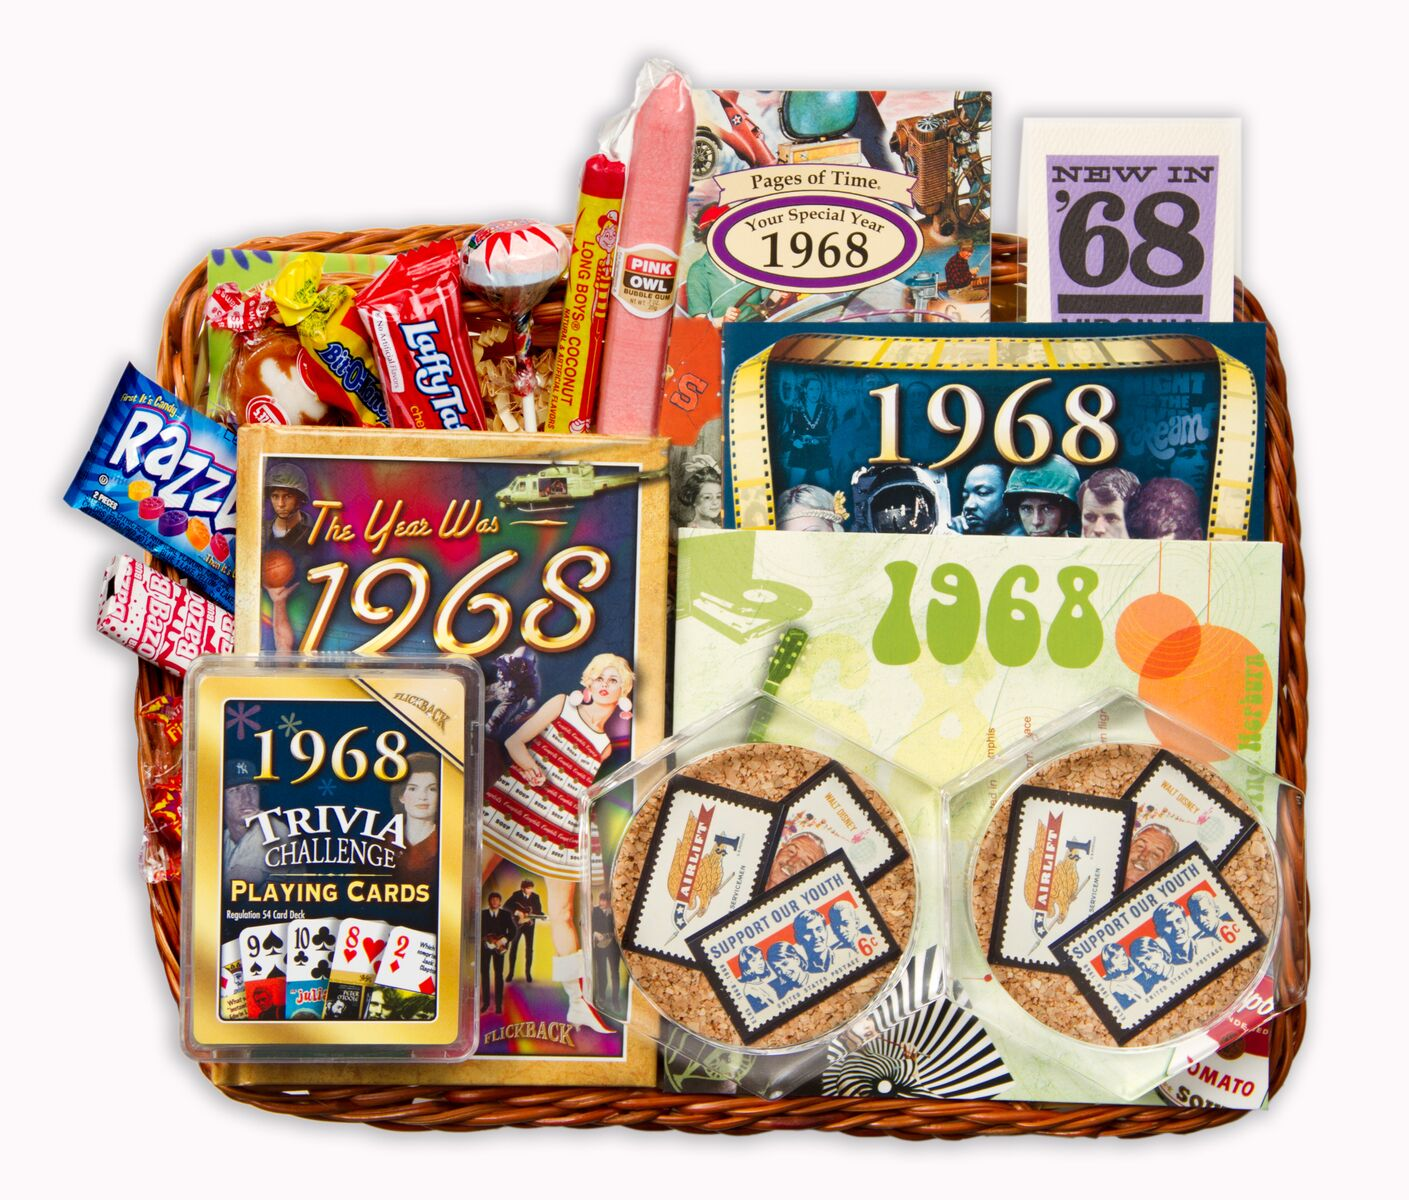 50th Birthday Gift Basket For Men: 50th Gift Basket With Stamps For 1968